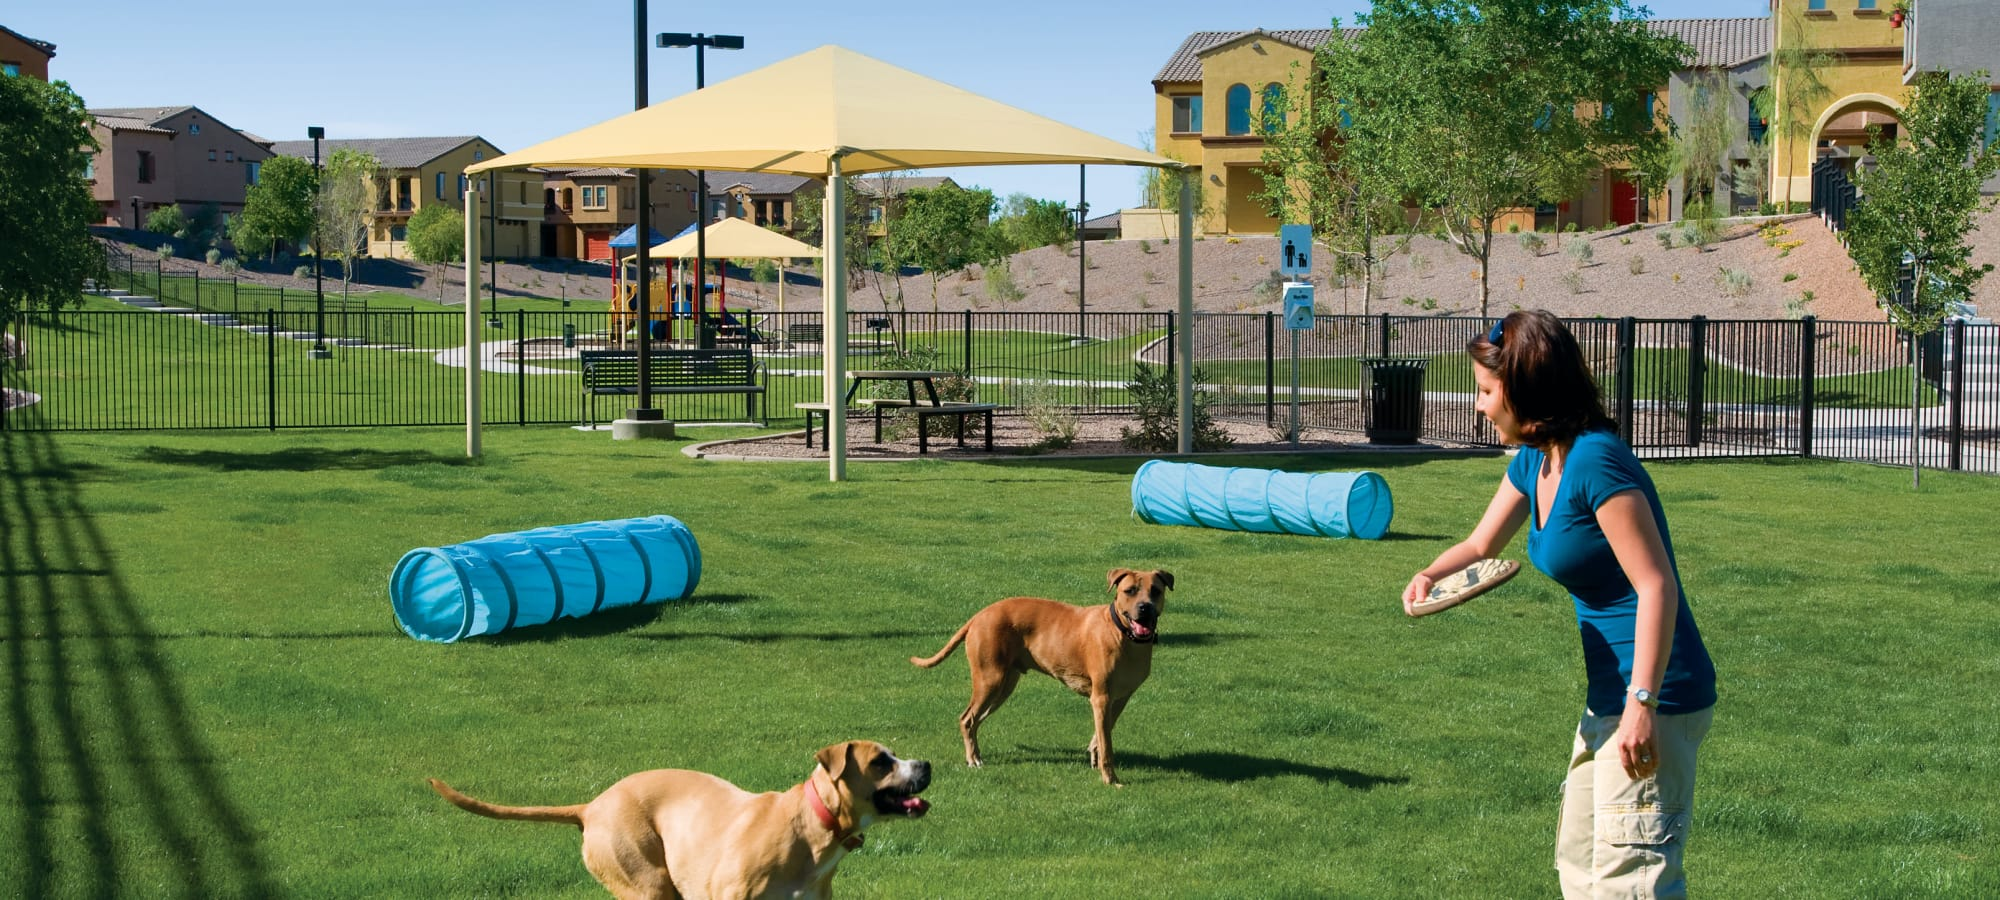 Community dog park at Ravenwood Heights in Tempe, Arizona